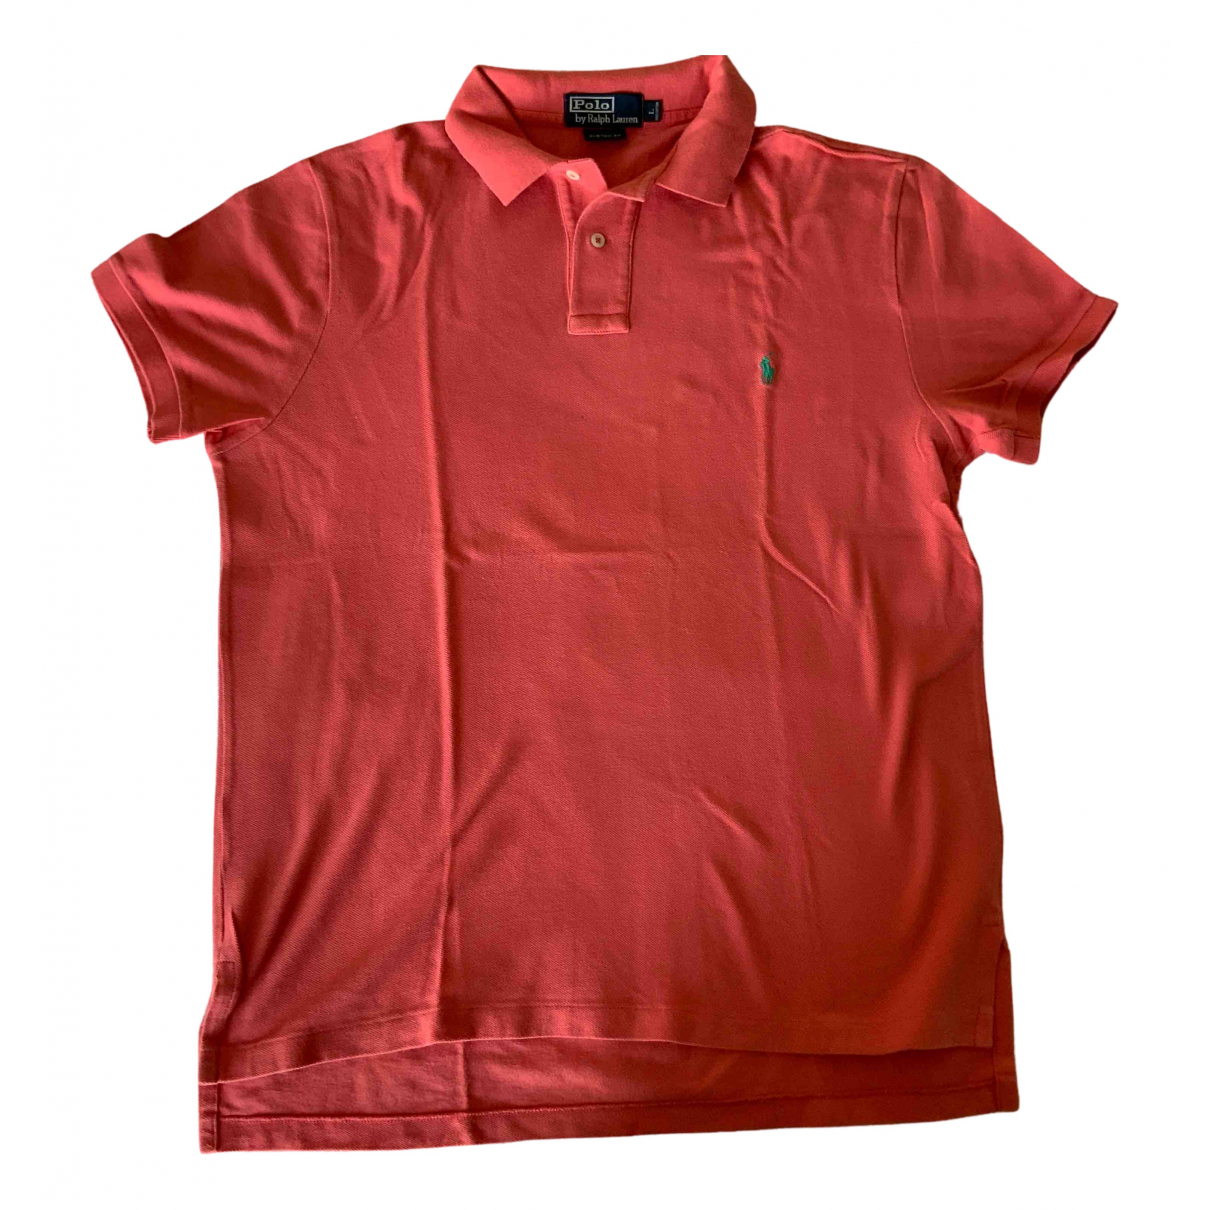 Polo Ralph Lauren Polo classique manches courtes Poloshirts in  Rosa Baumwolle